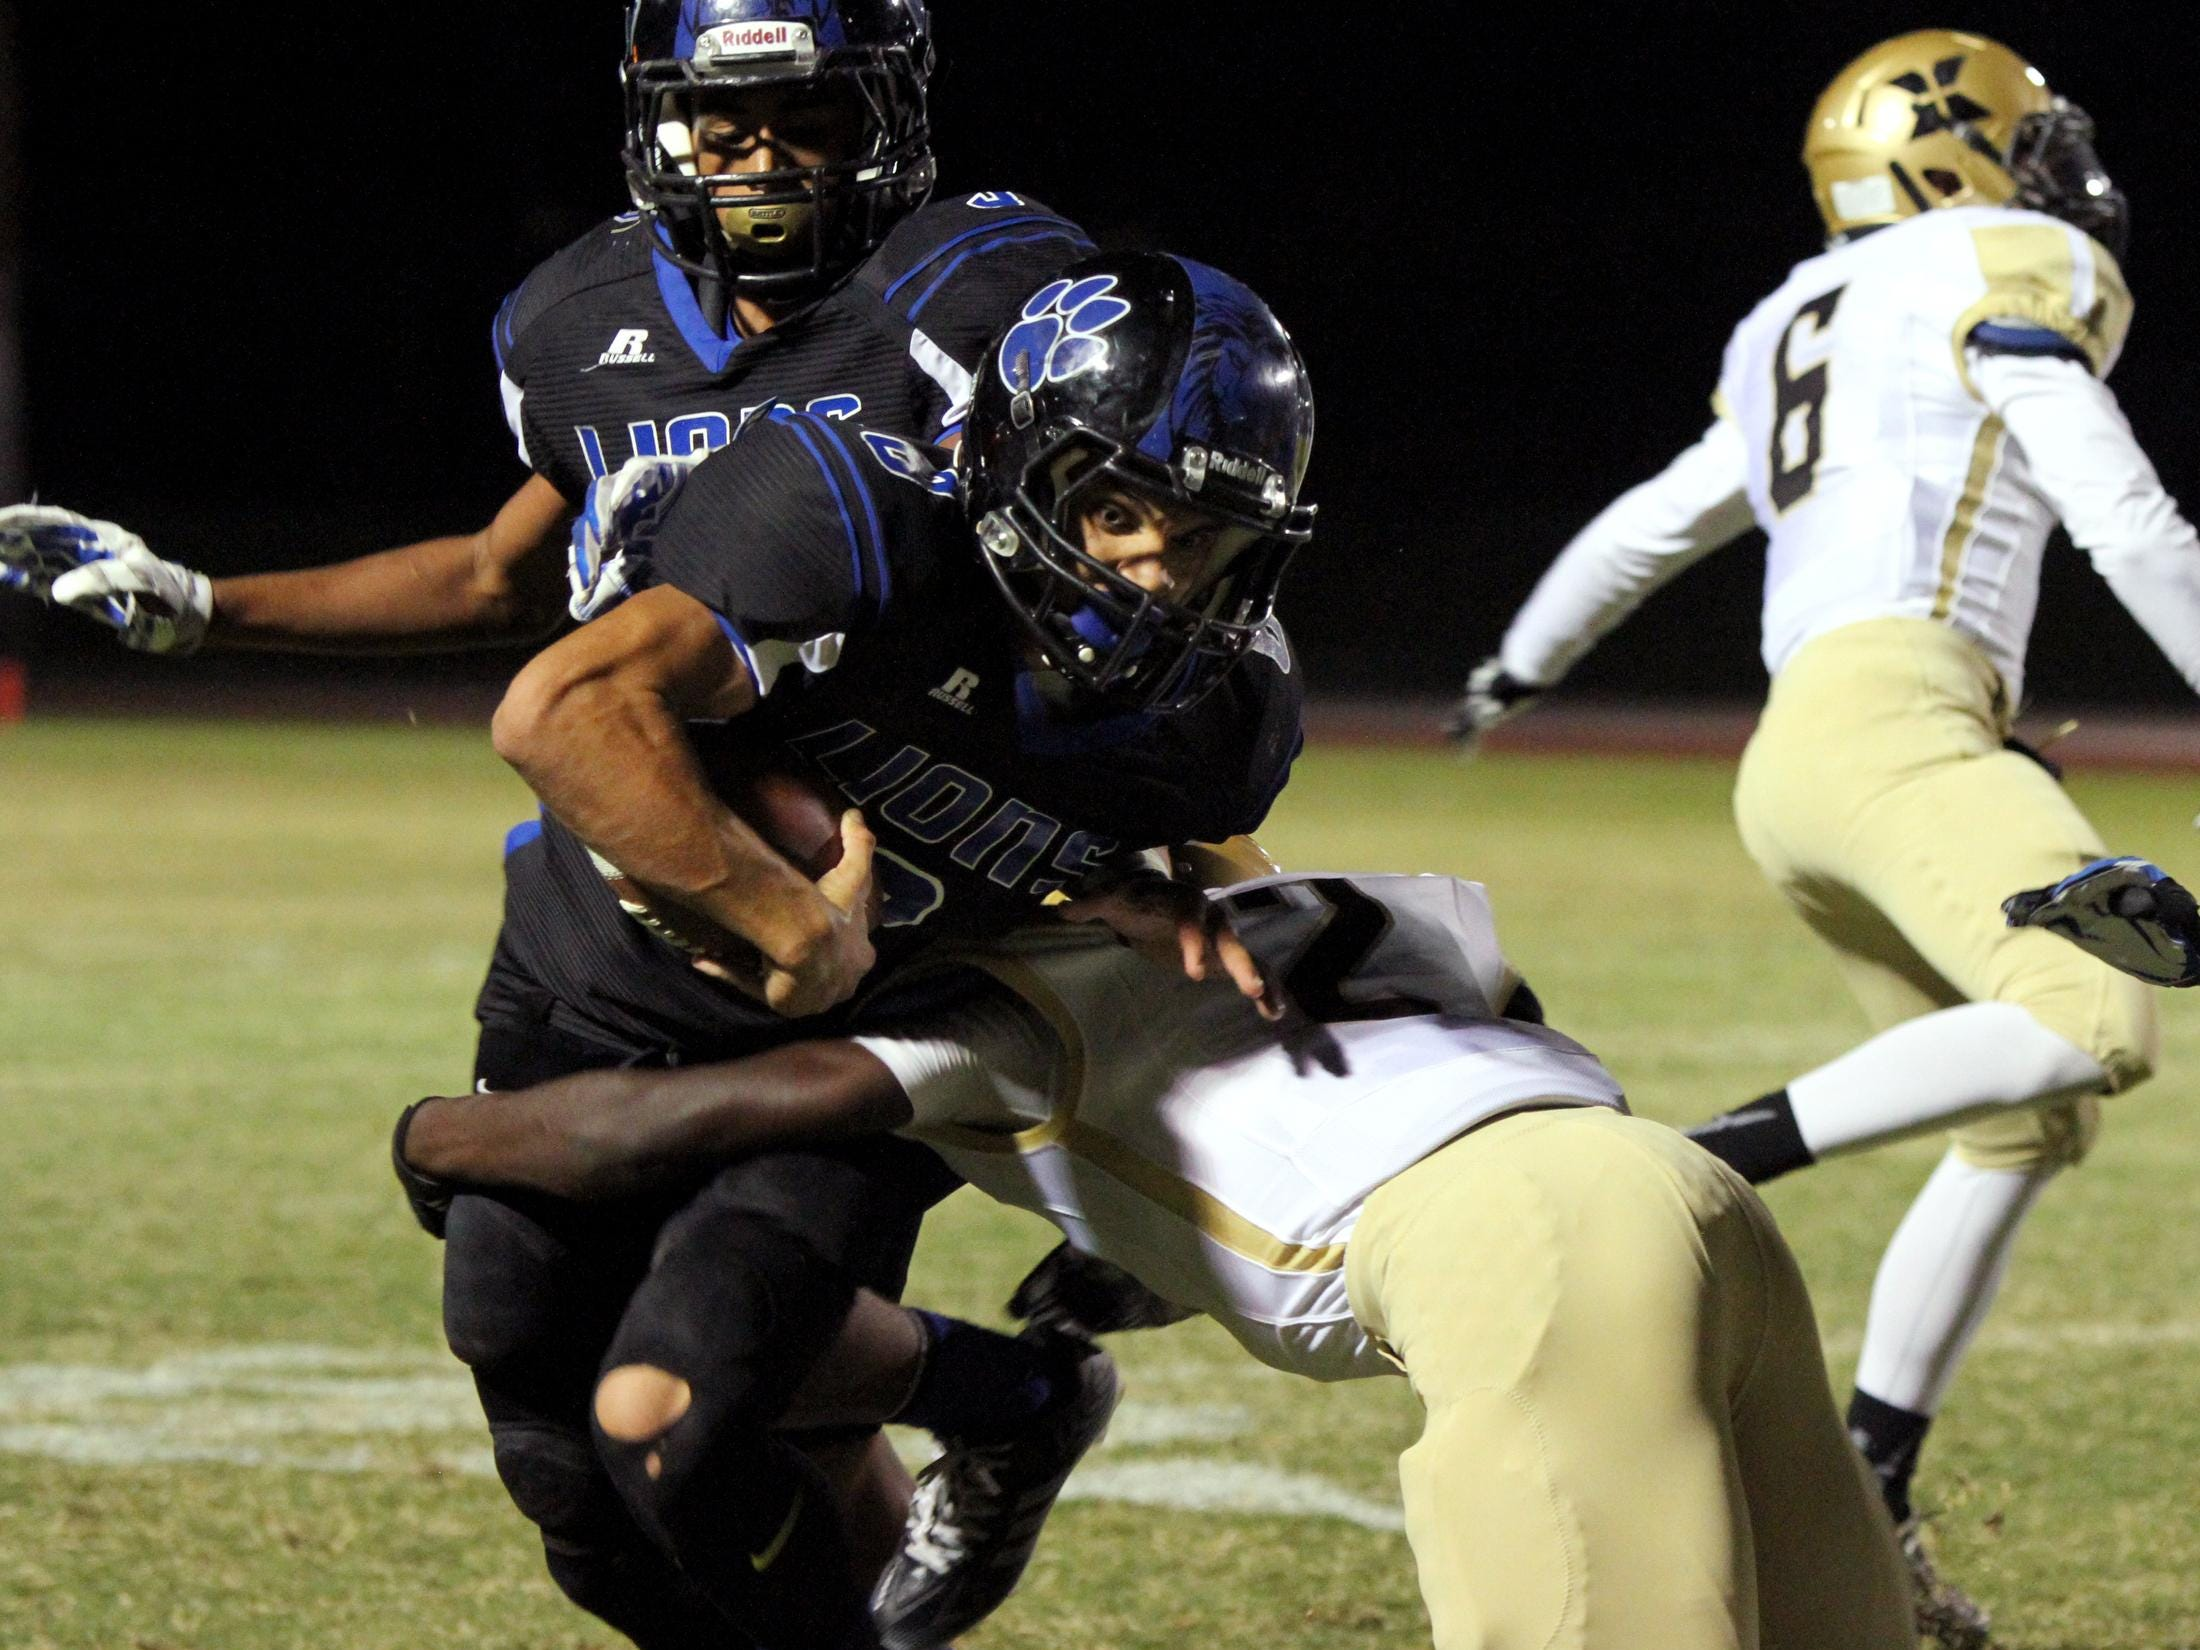 10/02/15 Taya Gray, Special to The Desert Sun Cathedral City's quarterback Cameron Lee tries to break the tackle of Xavier Prep's Fisayo Omilana during the first half of the game in Cathedral City on Friday, October 2, 2015.